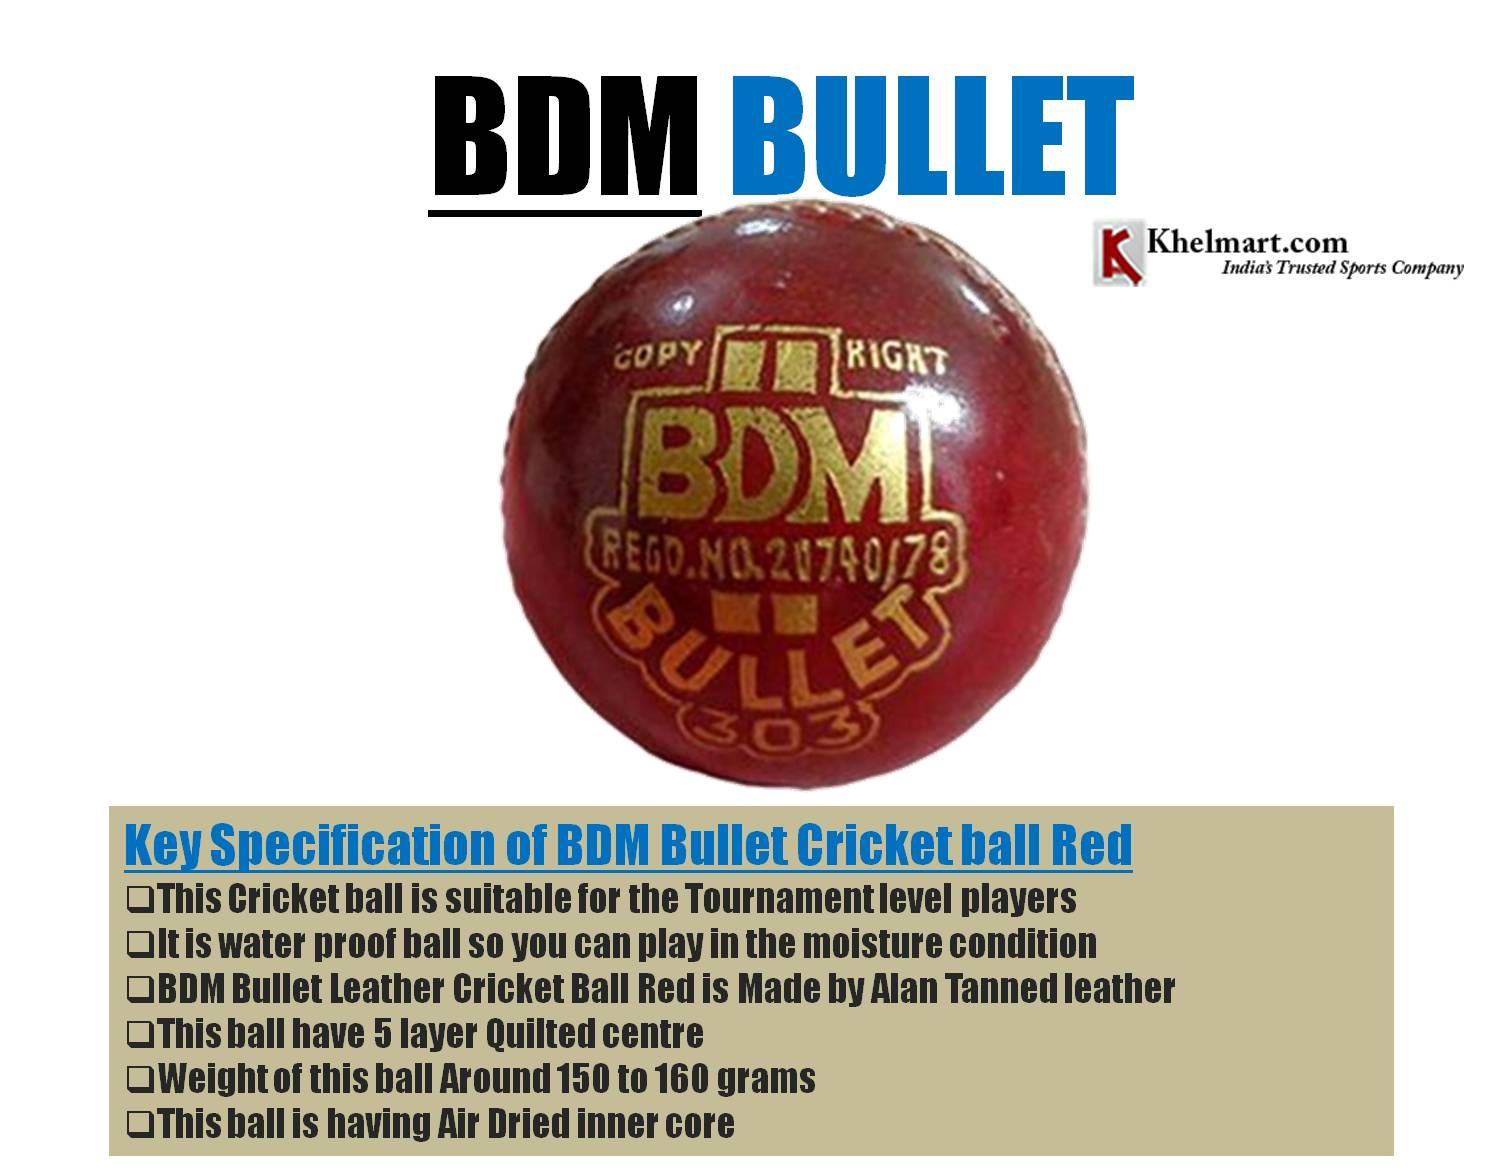 BDM_BULLET_CRICKET_BALL